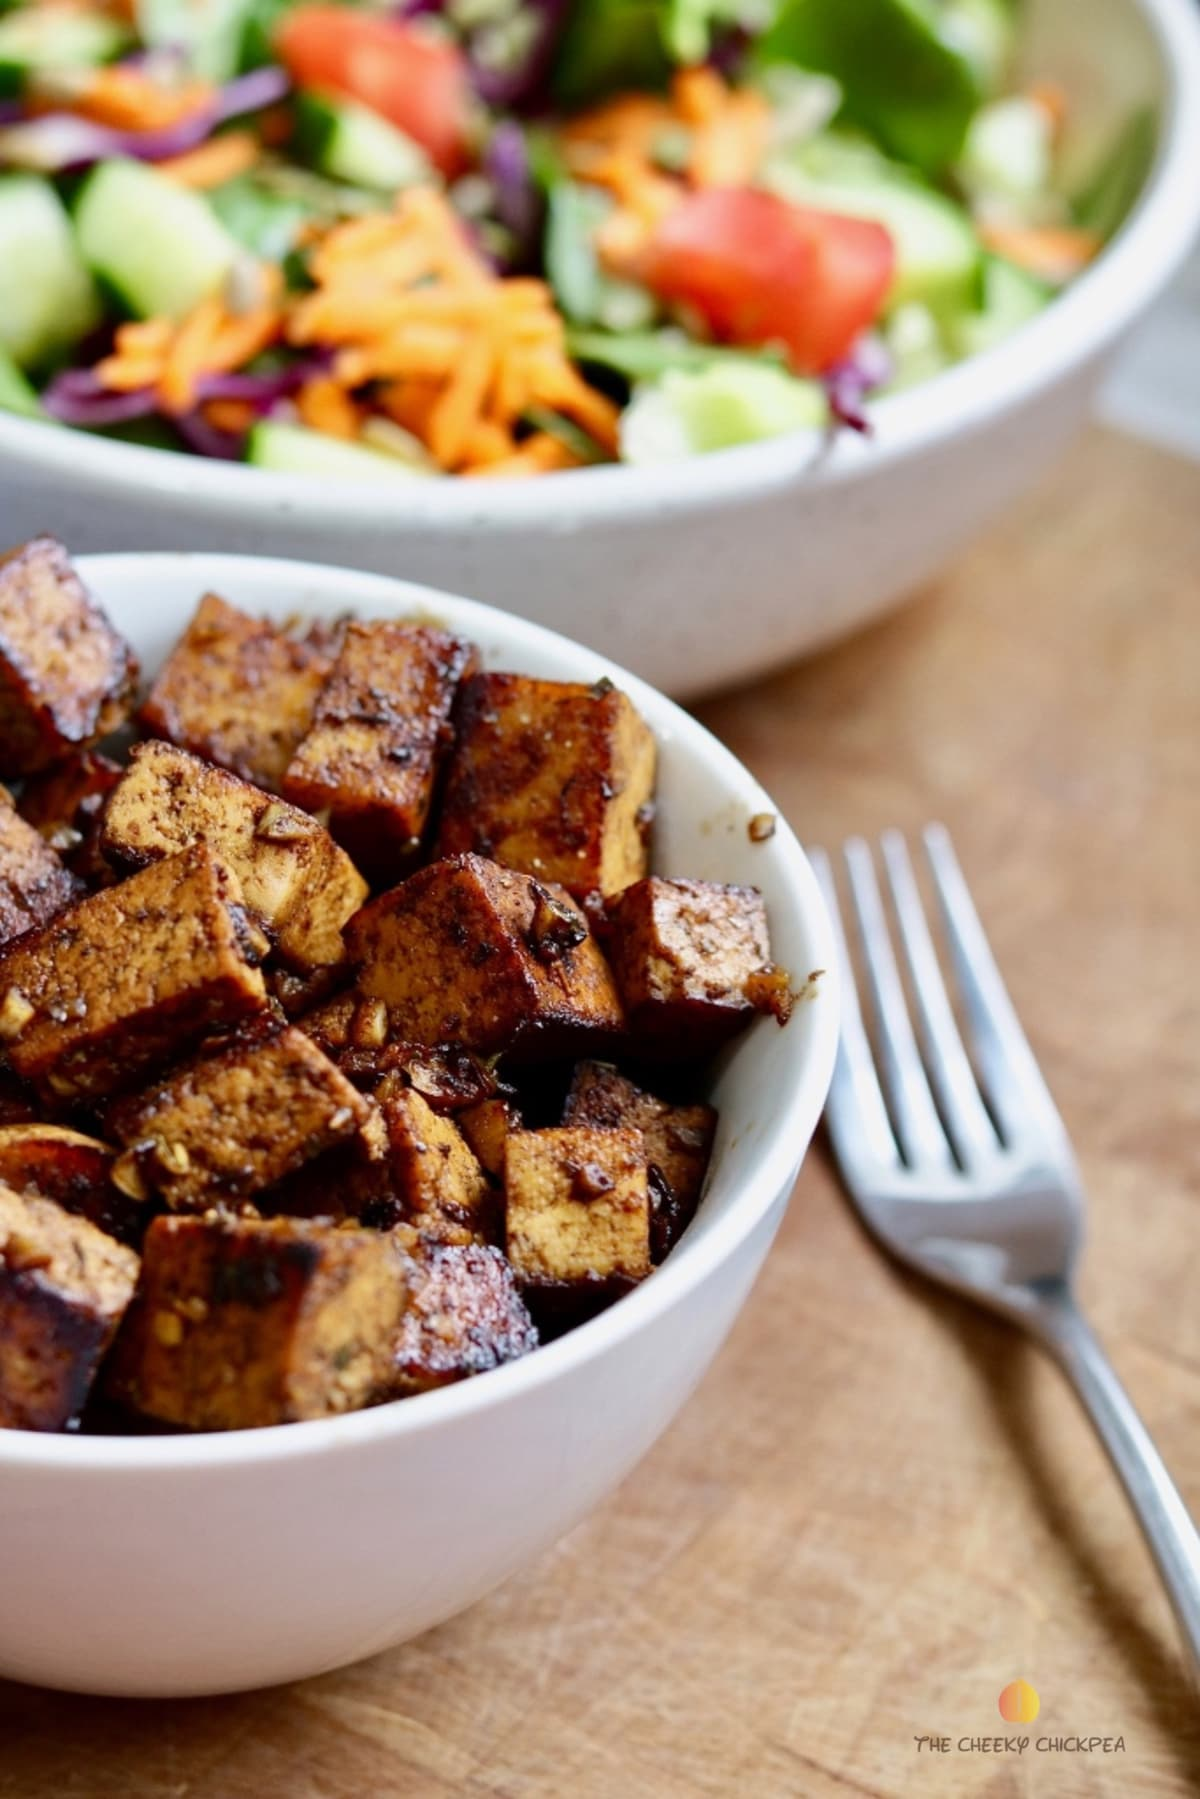 marinated tofu pieces in a white bowl beside a fork